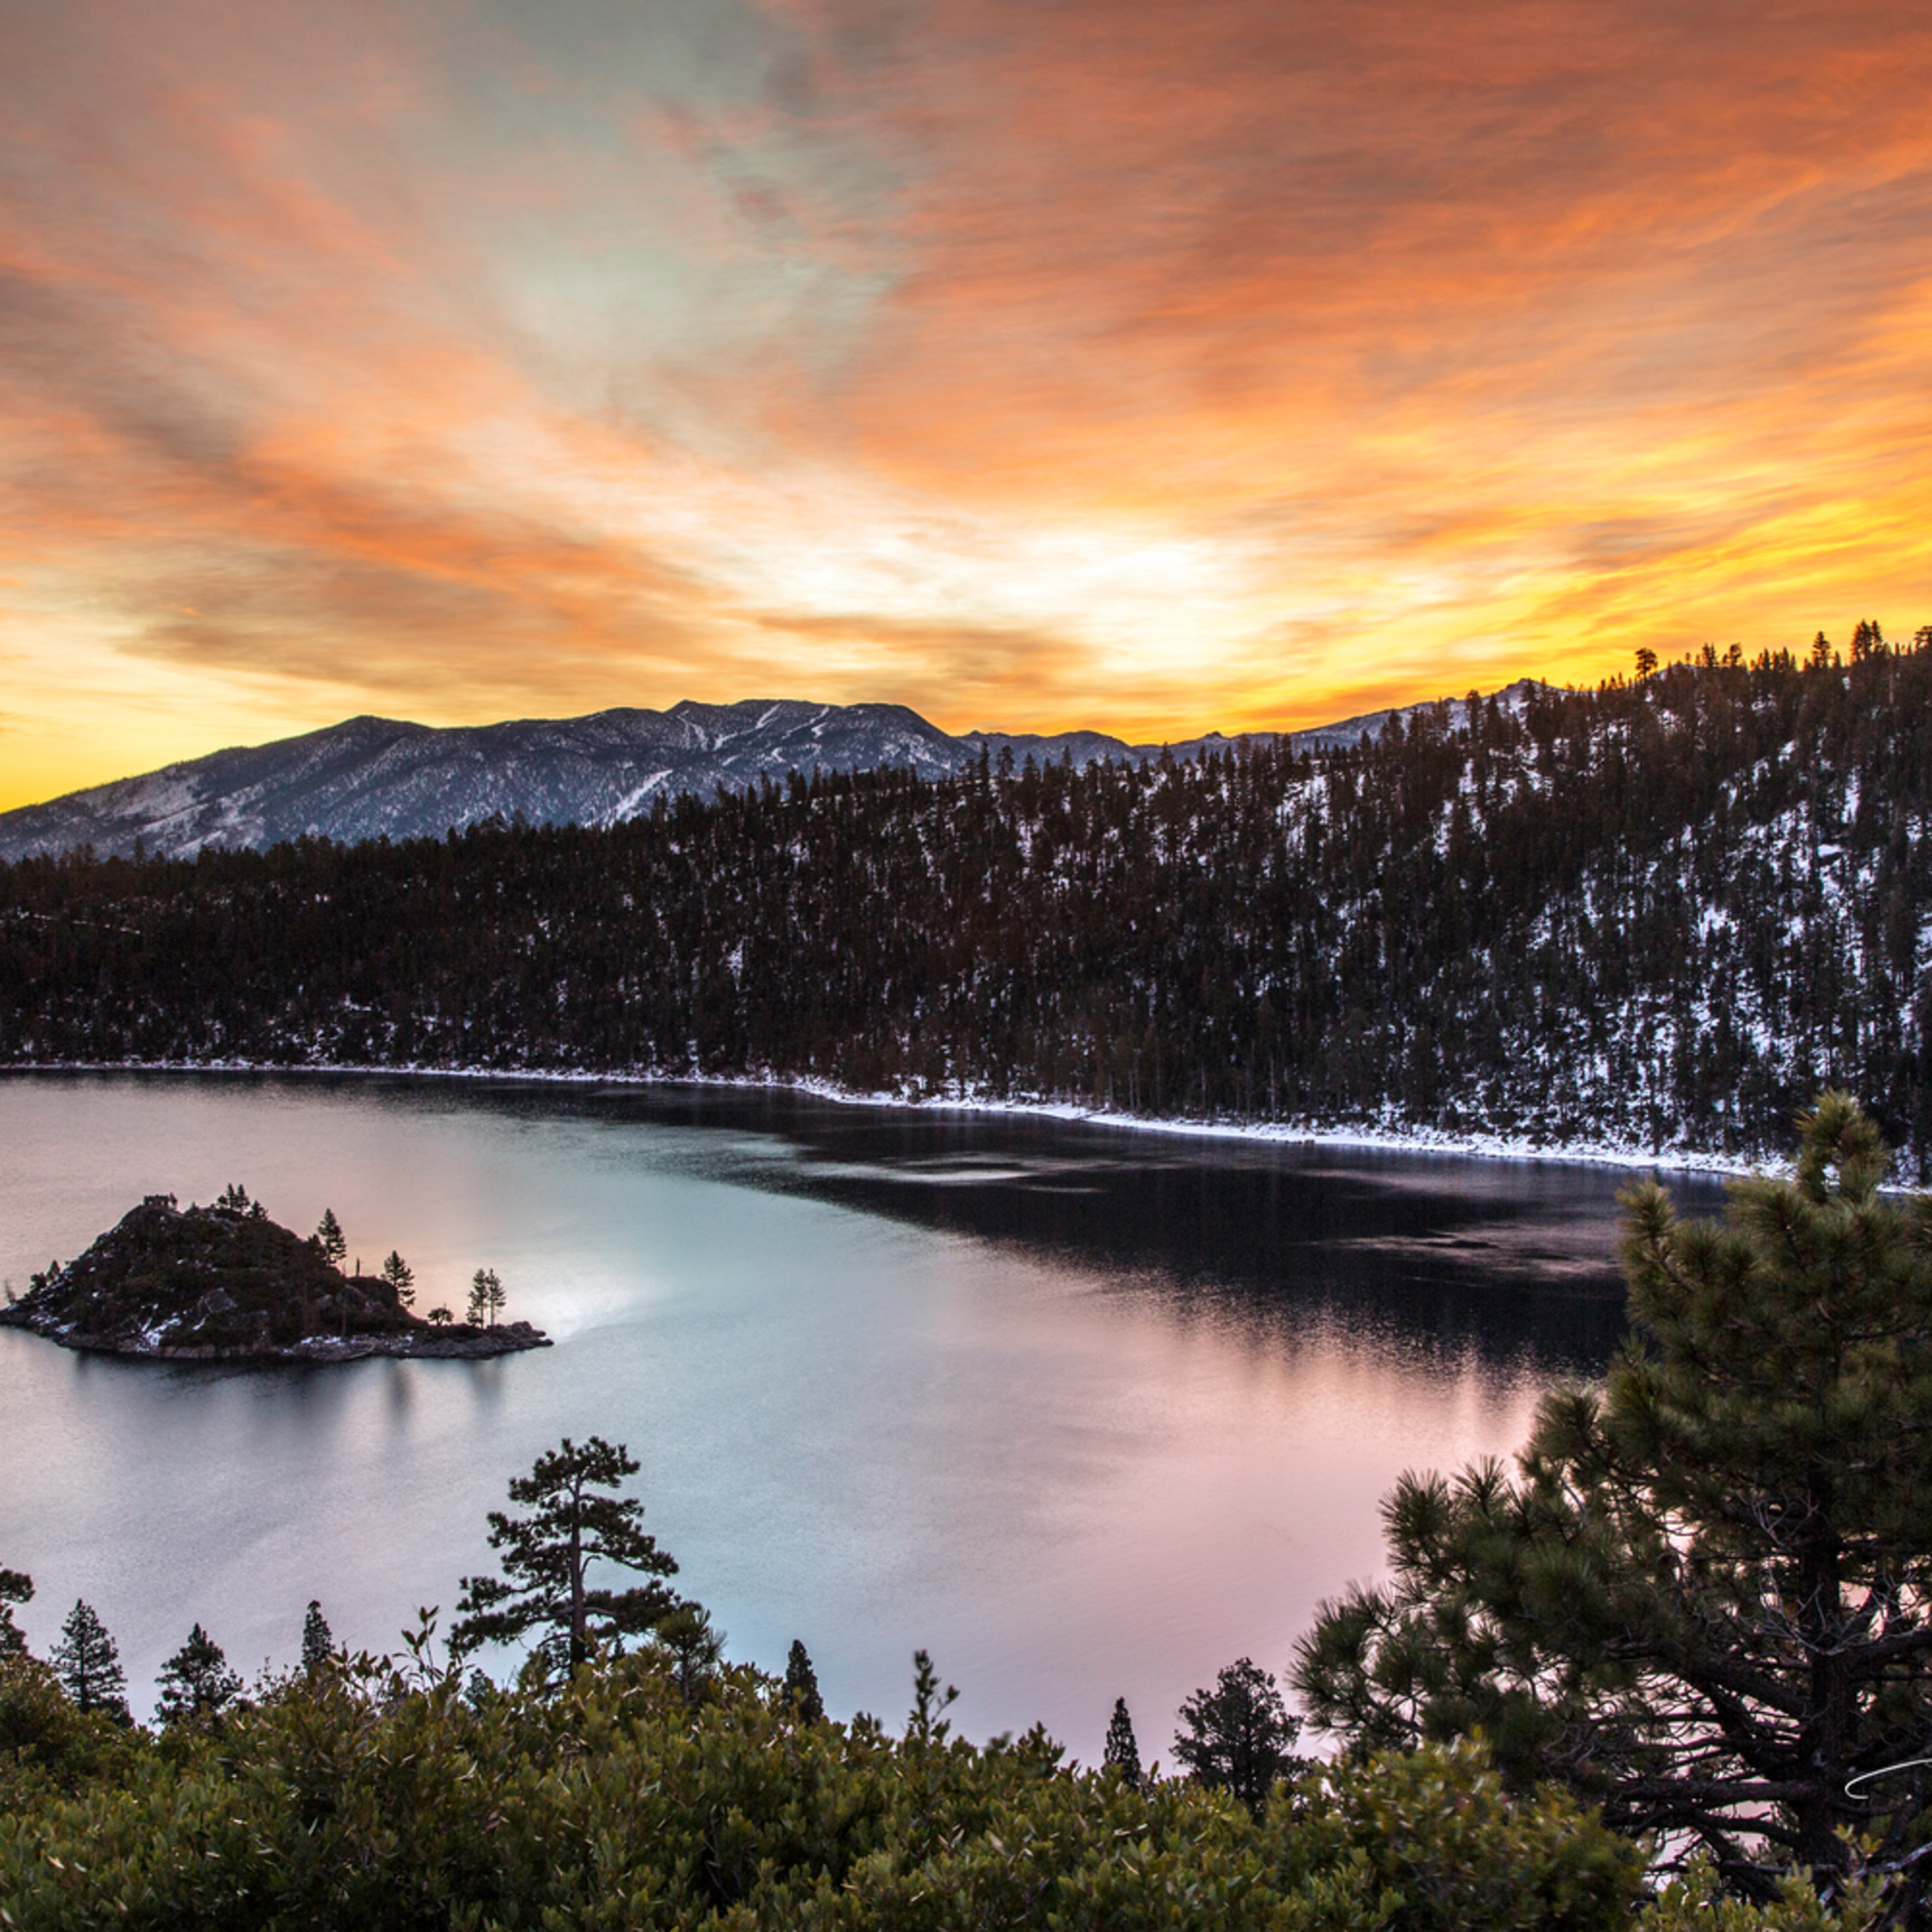 12x18 emerald bay sunrise yt6vpe